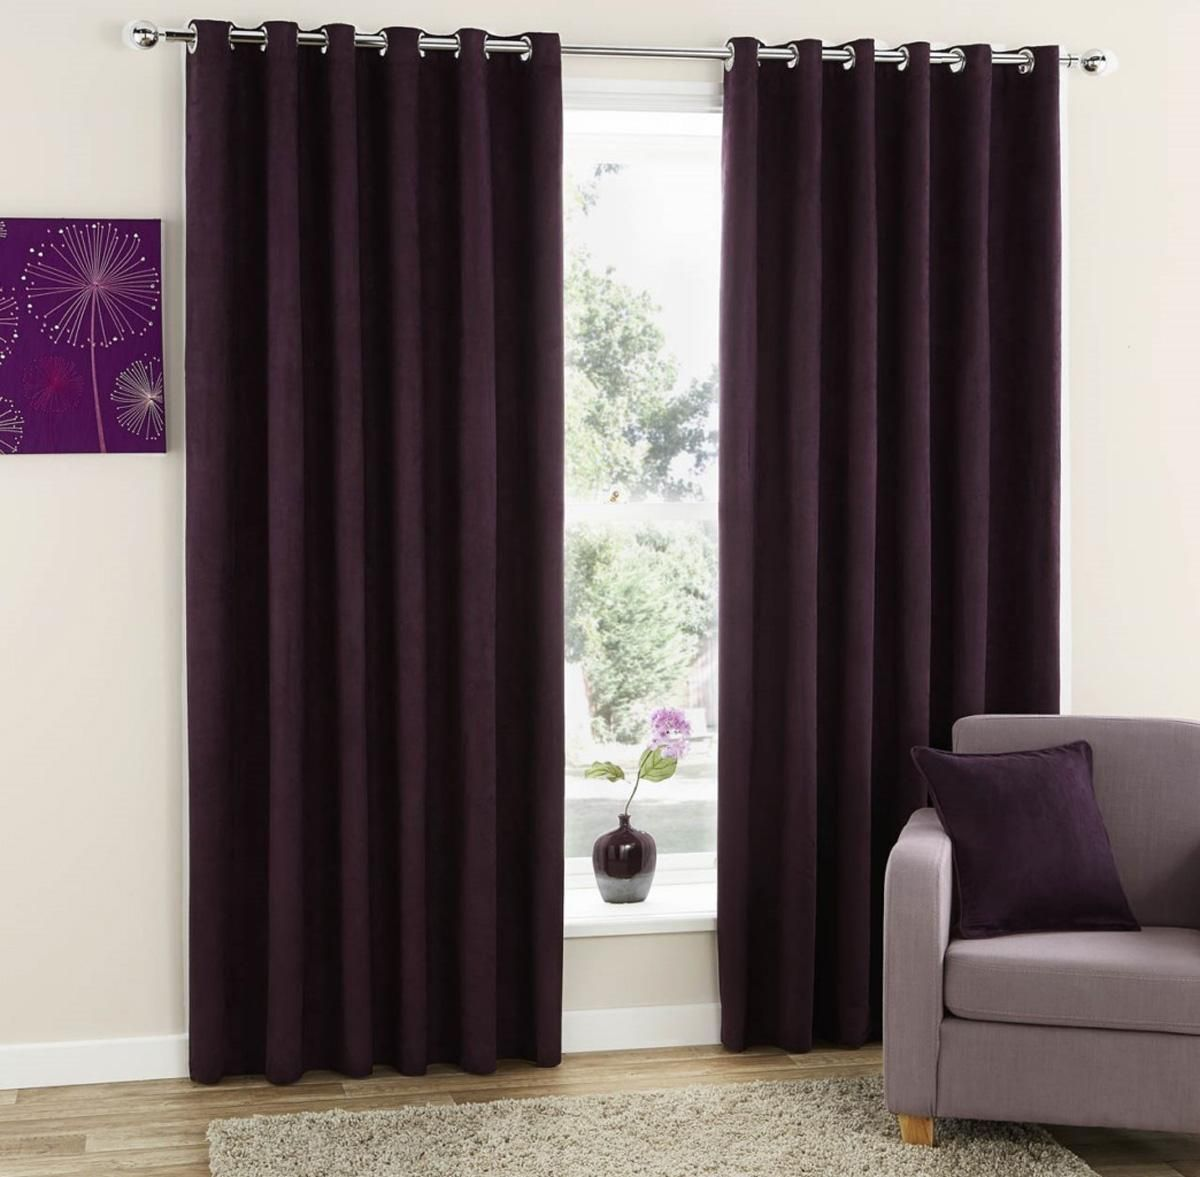 Faux Suede Ready Made Eyelet Curtains